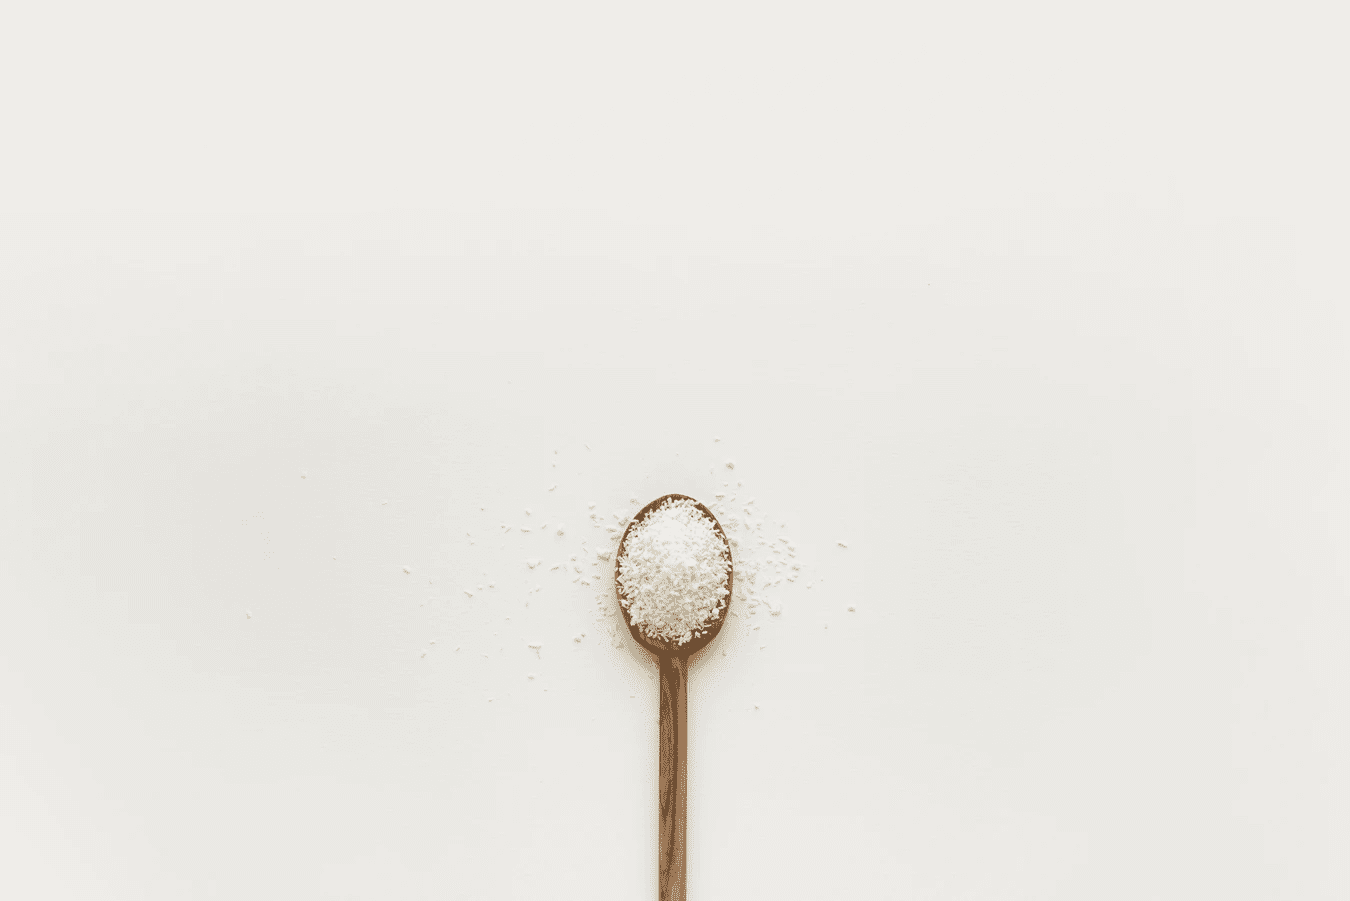 a birds-eye view of a wooden filled with powder on a white background